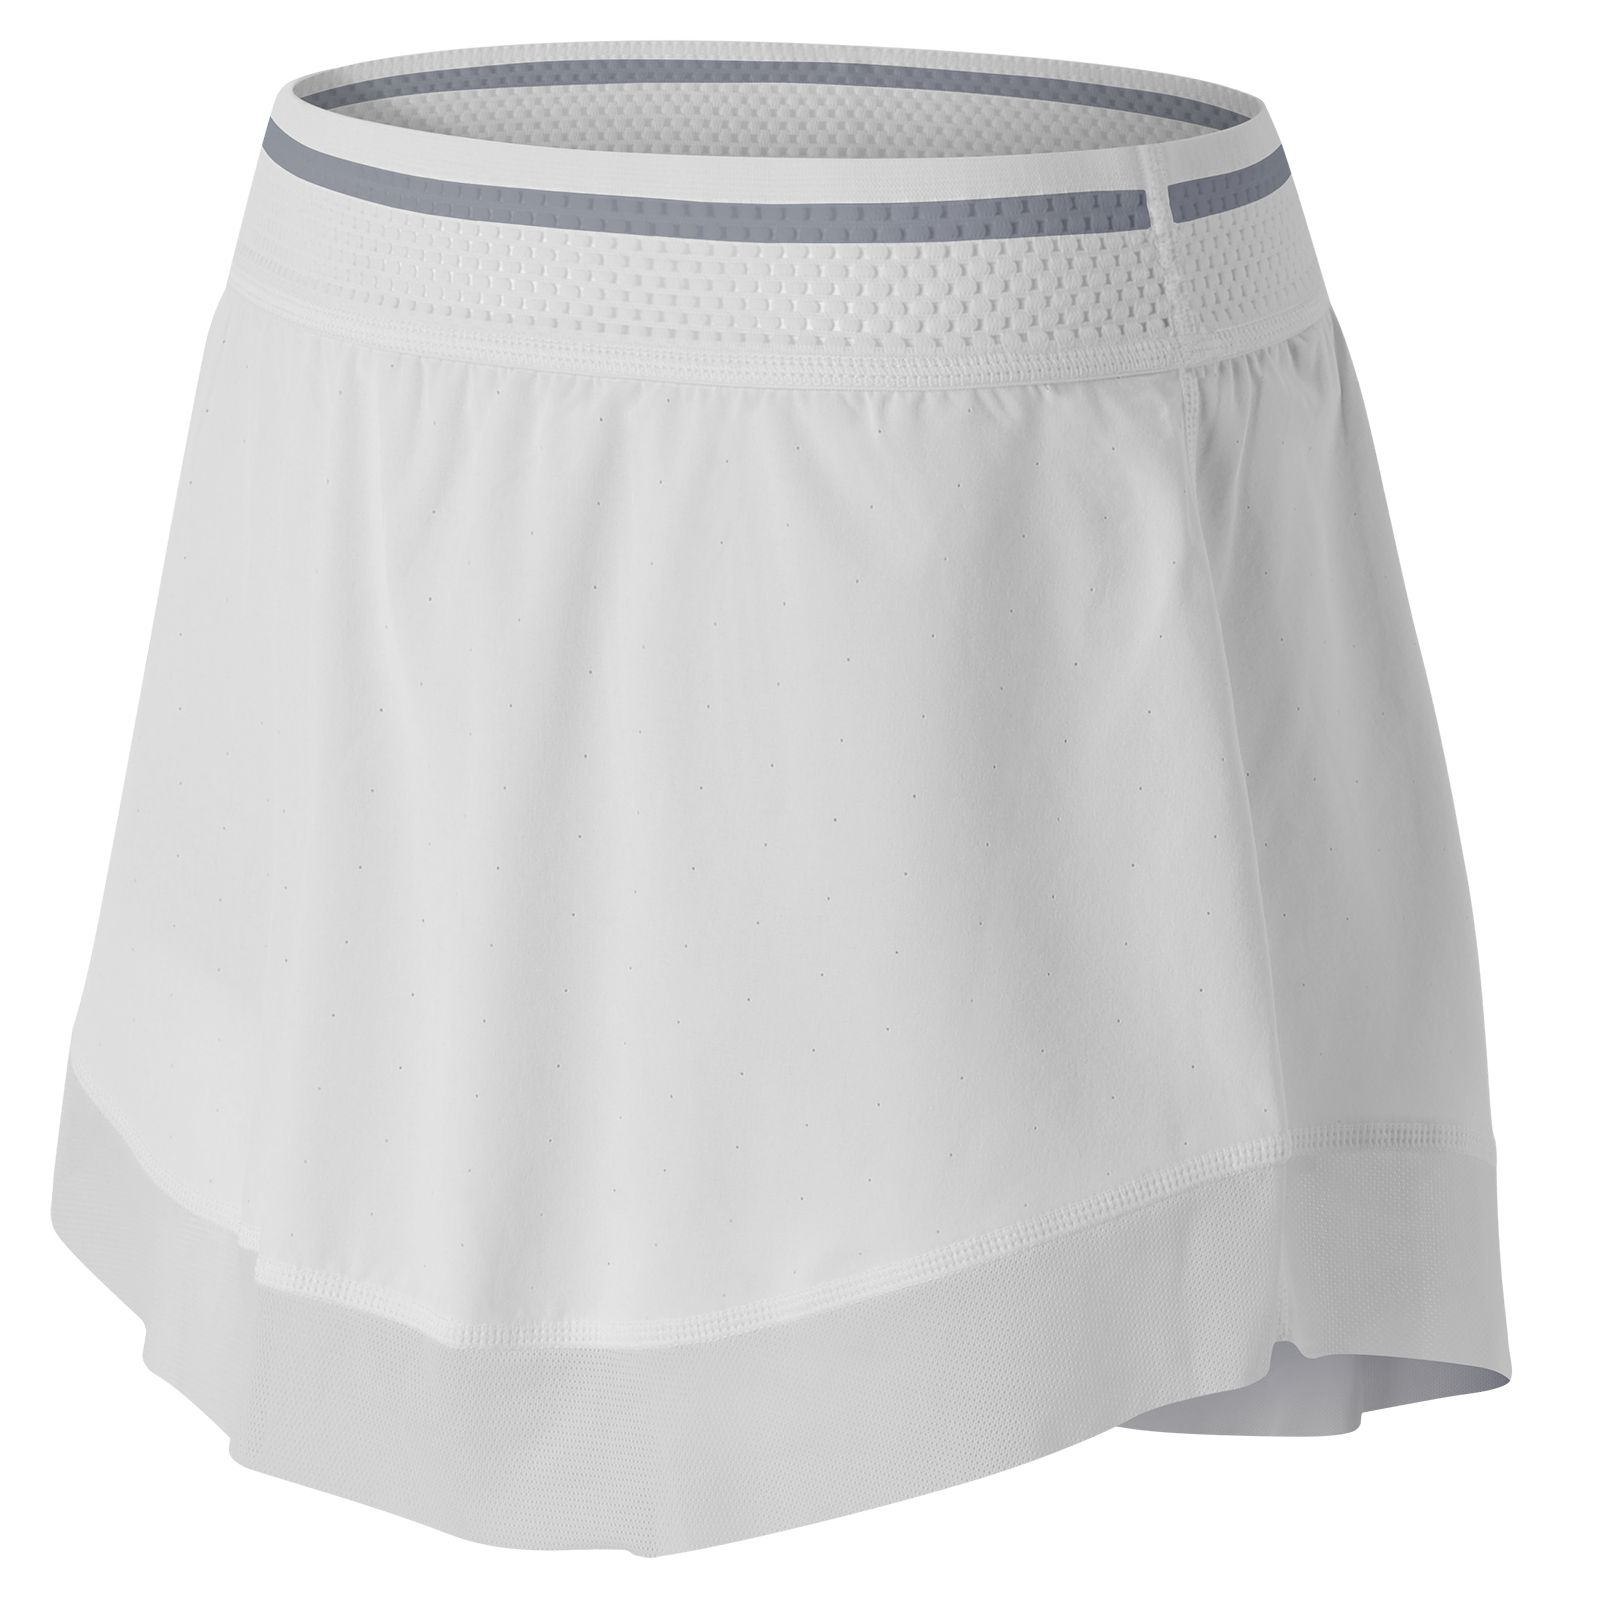 New Balance : Tournament Skort : Women's Apparel : WK61406WT